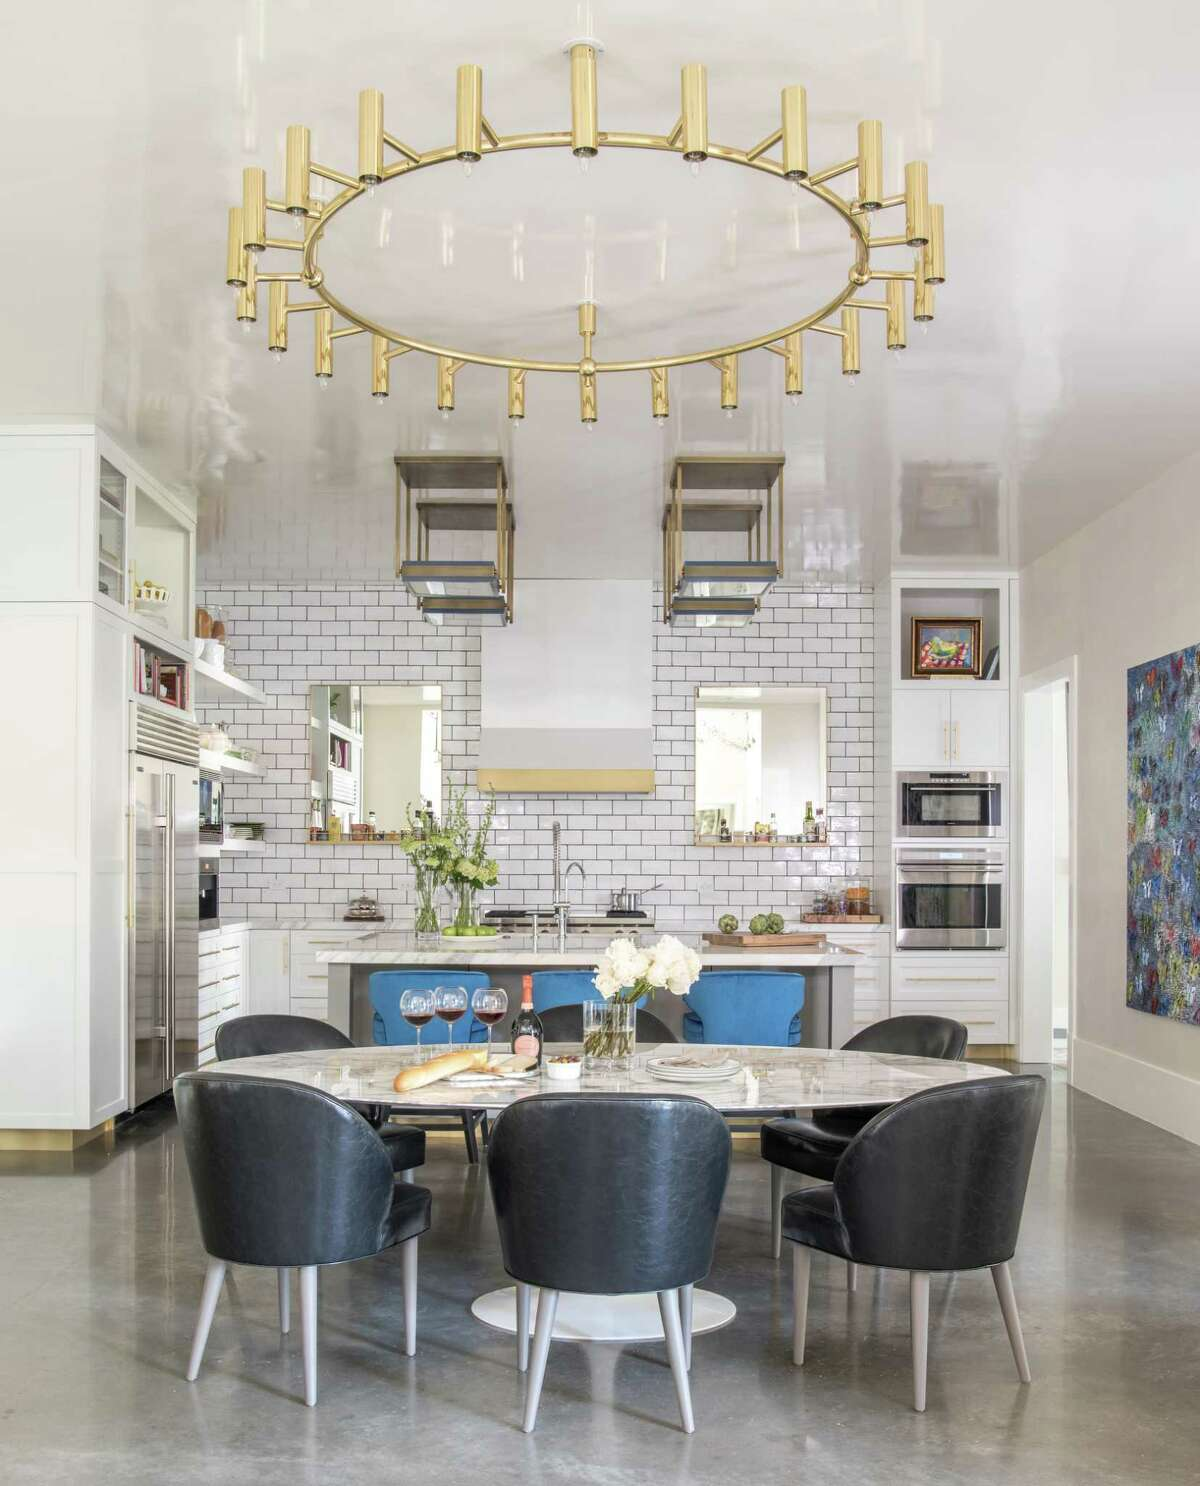 The Orens' home is filled with dramatic lighting, including these gold fixtures in the dining area and kitchen. Gold has been a big trend in lighting and in interior design in 2018.